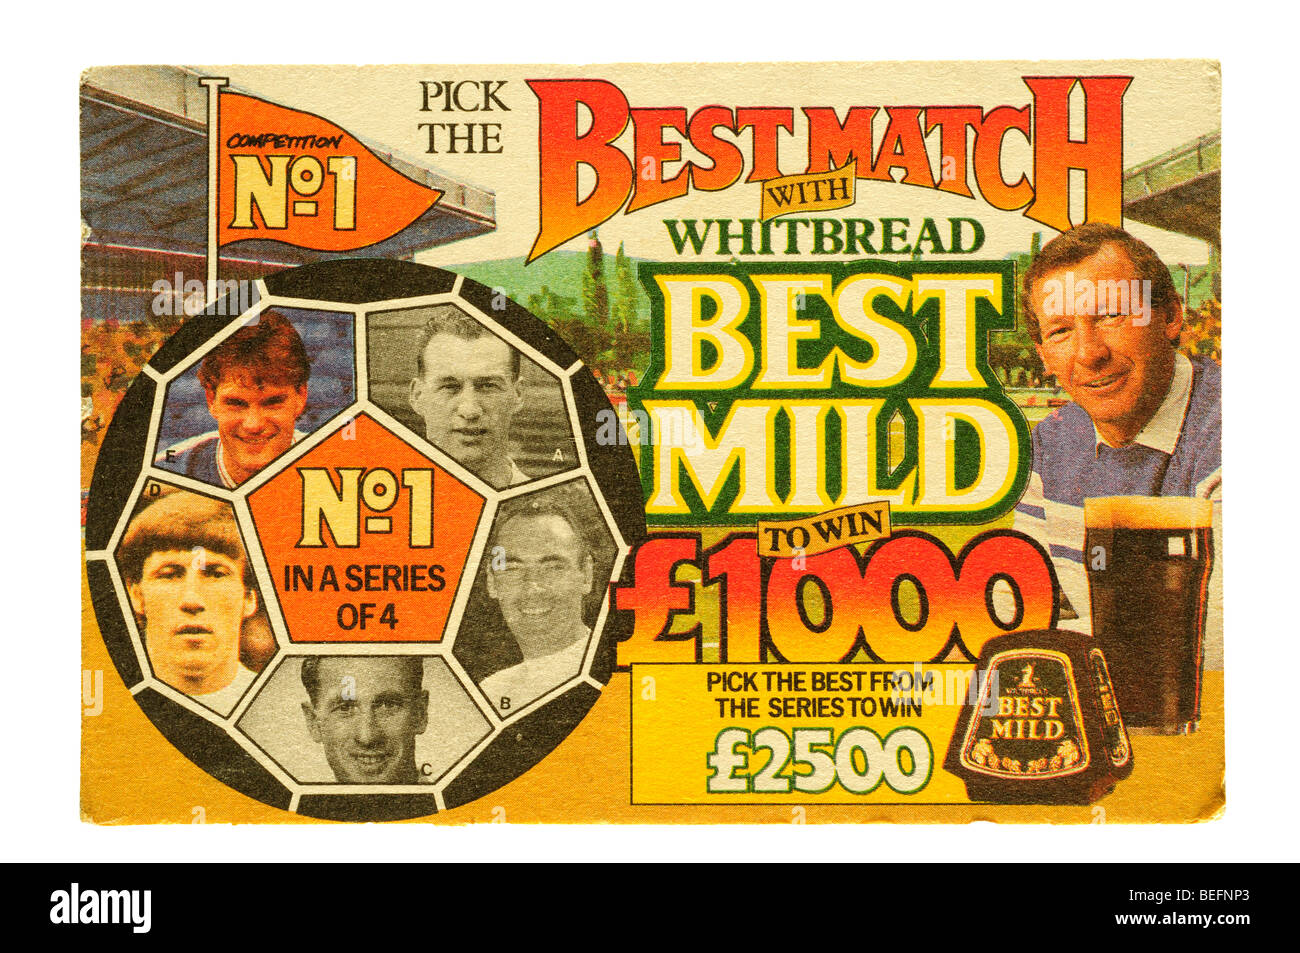 pick the best match with whitbread best mild - Stock Image